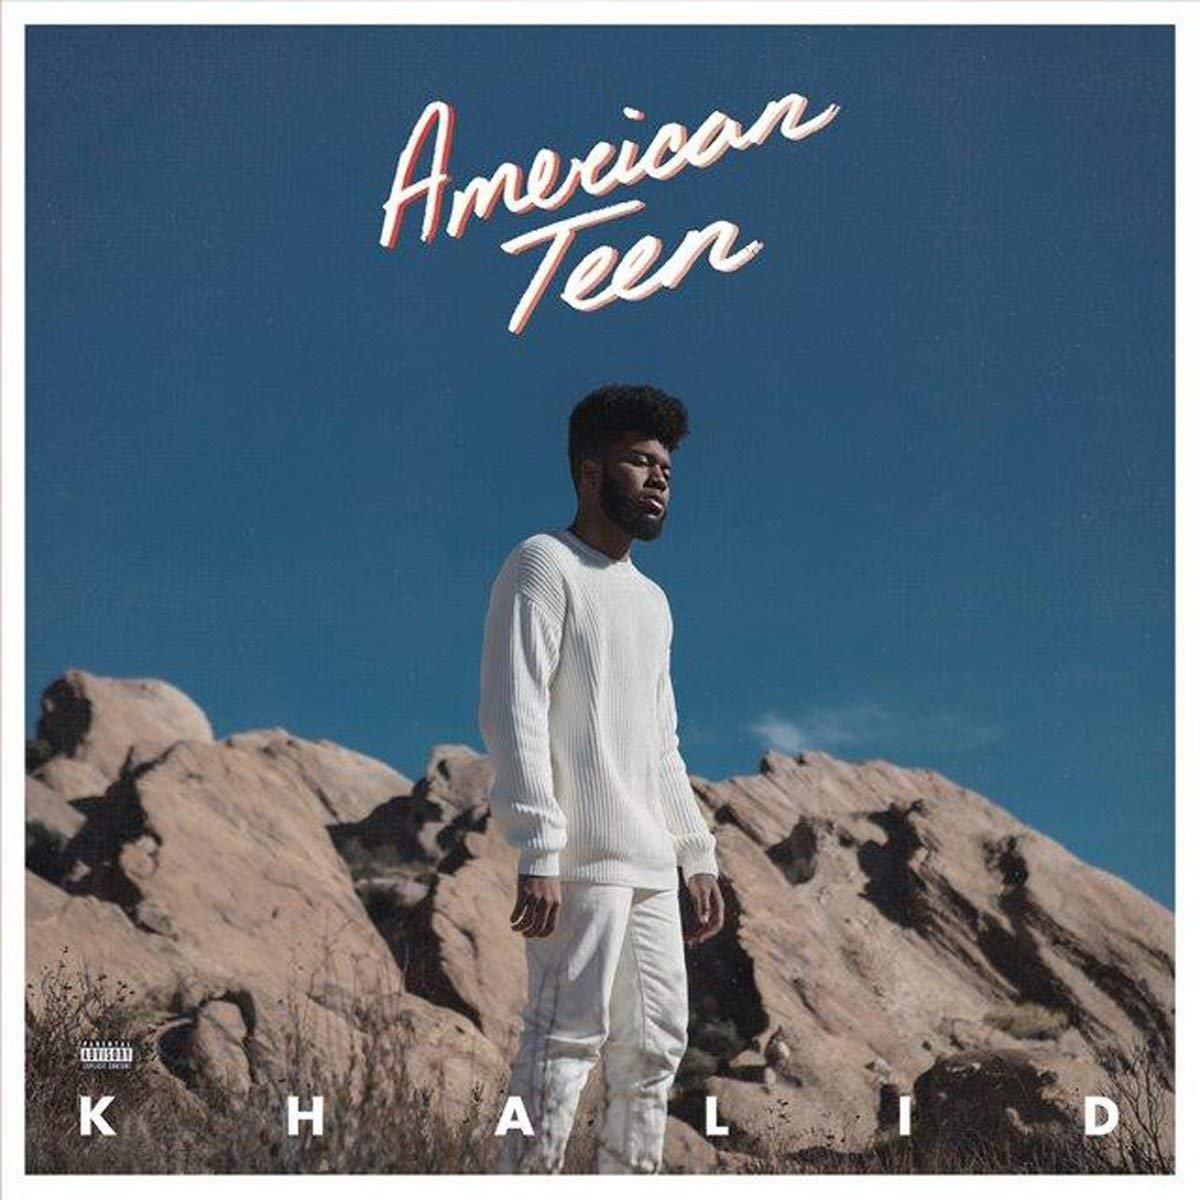 AMERICAN TEEN (VINYL) EXPLICIT LYRICS - Vinyl Sound